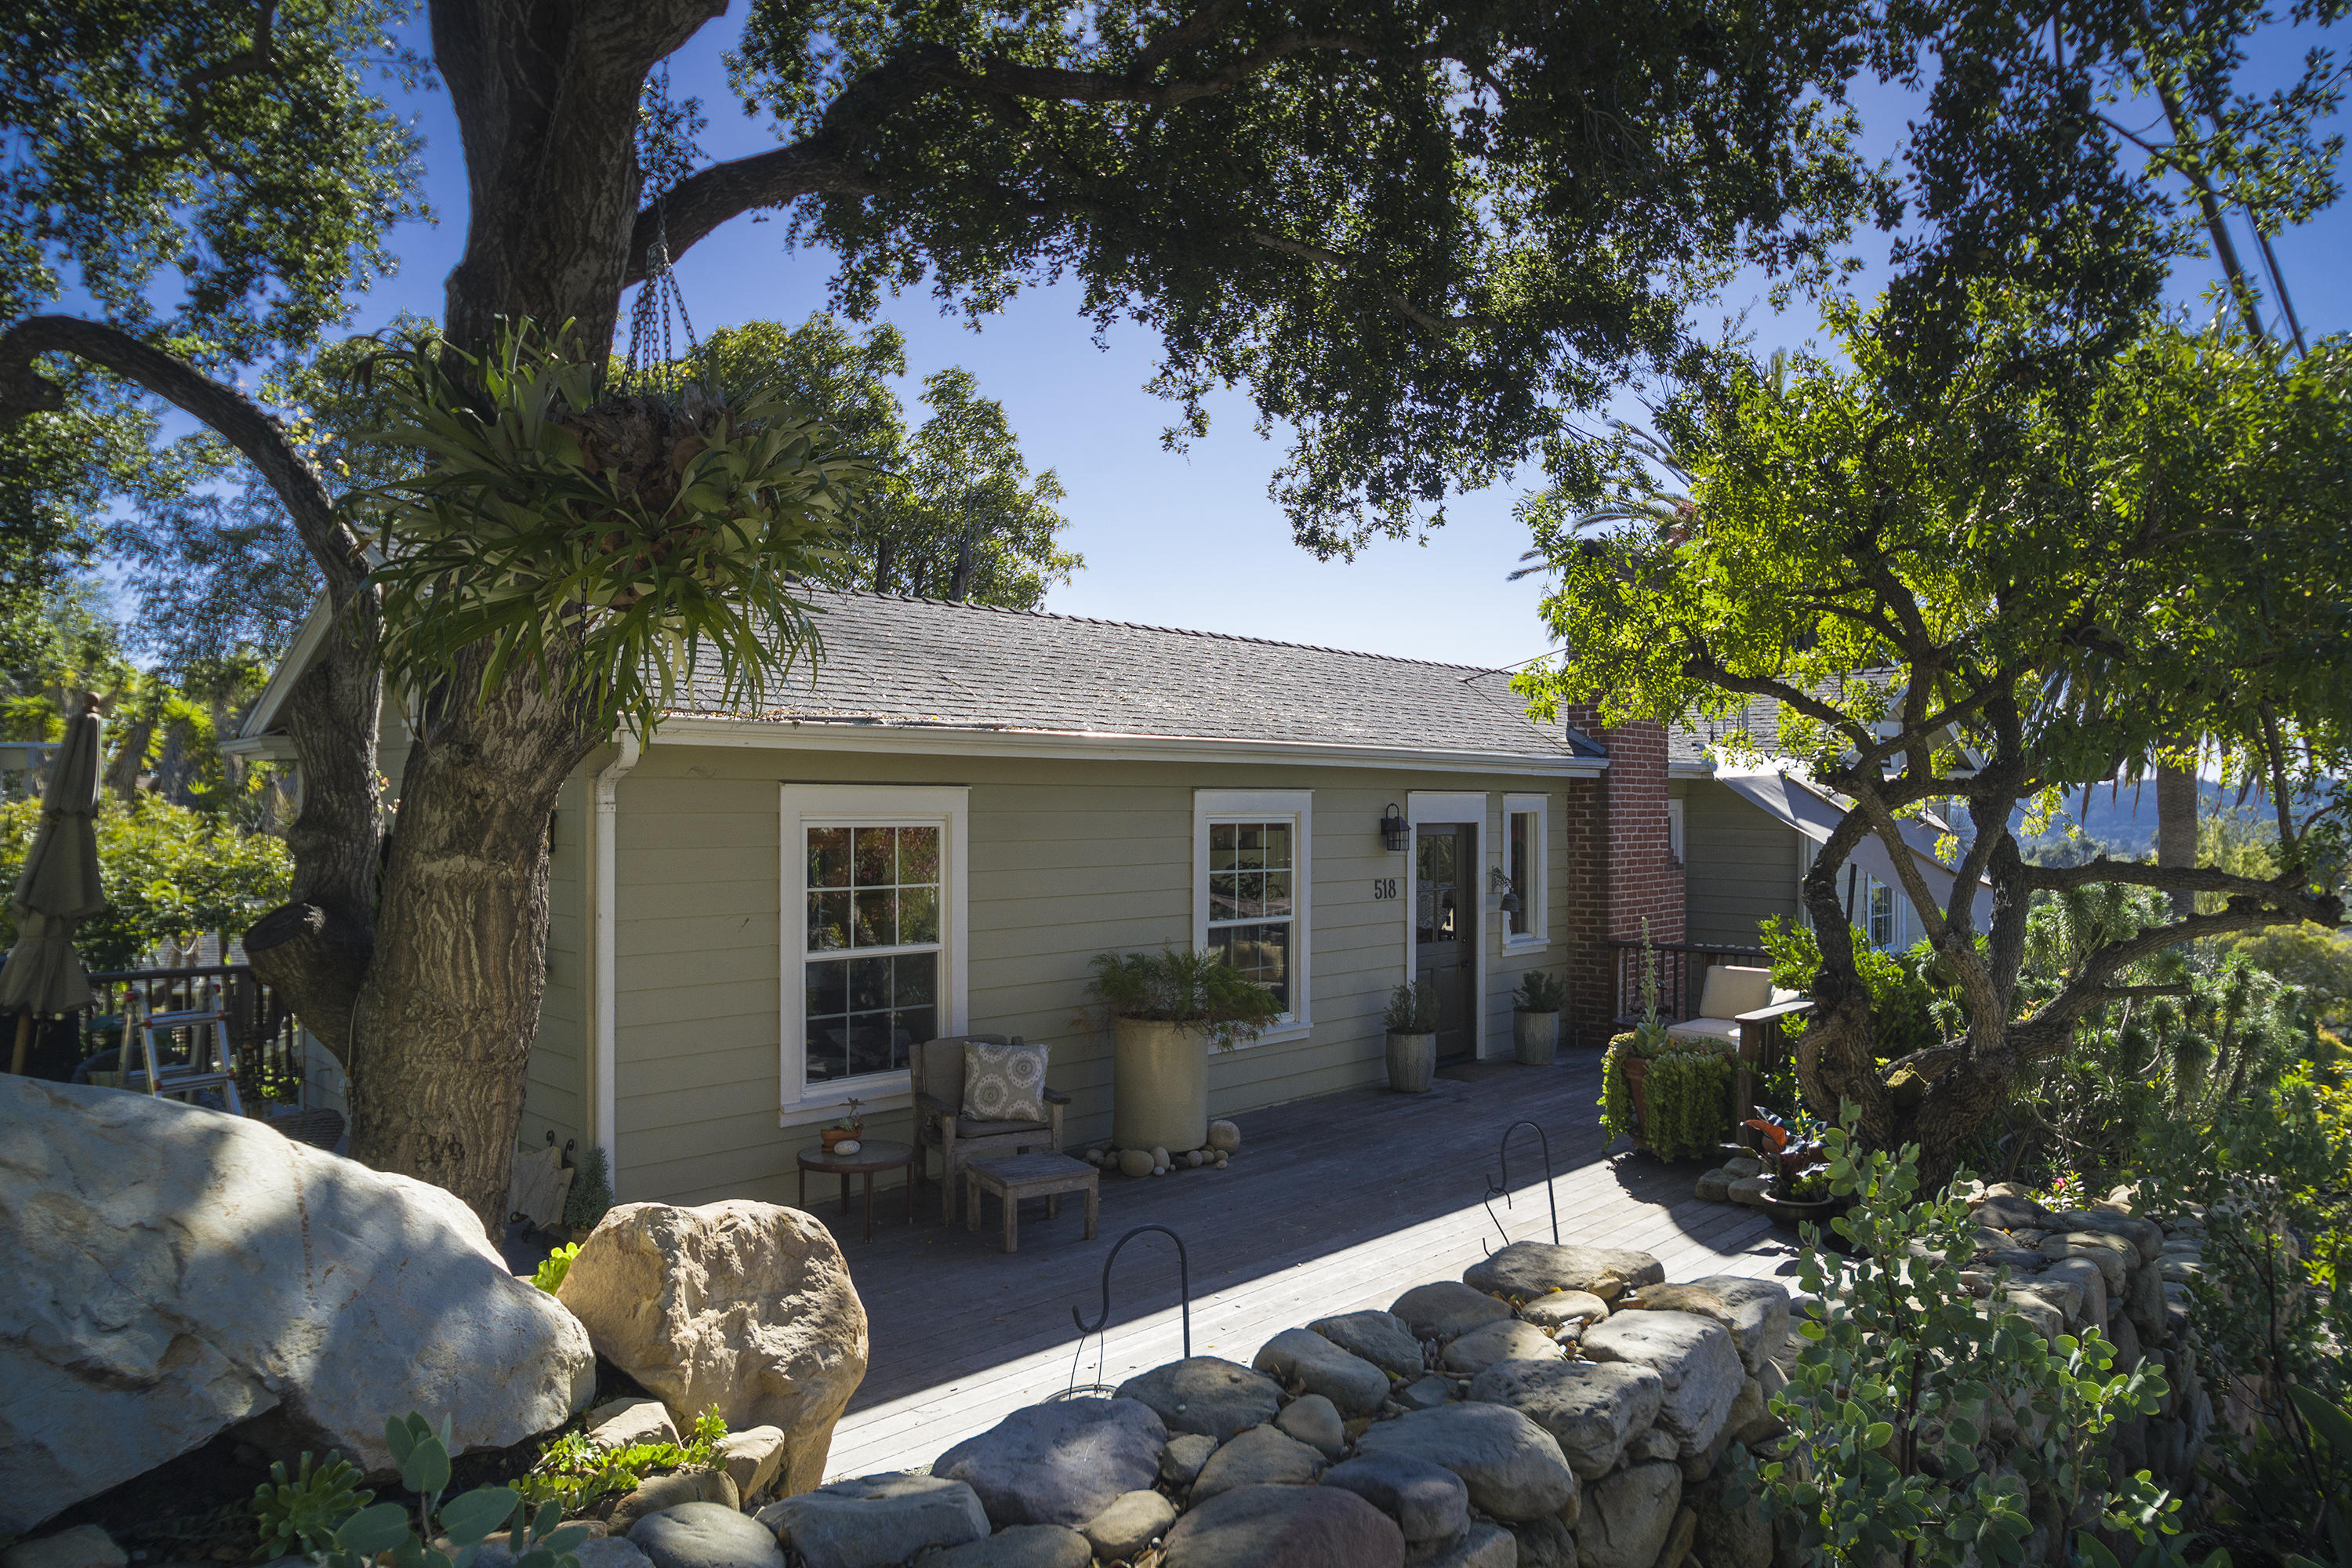 Property photo for 518 E Pedregosa St Santa Barbara, California 93103 - 17-178